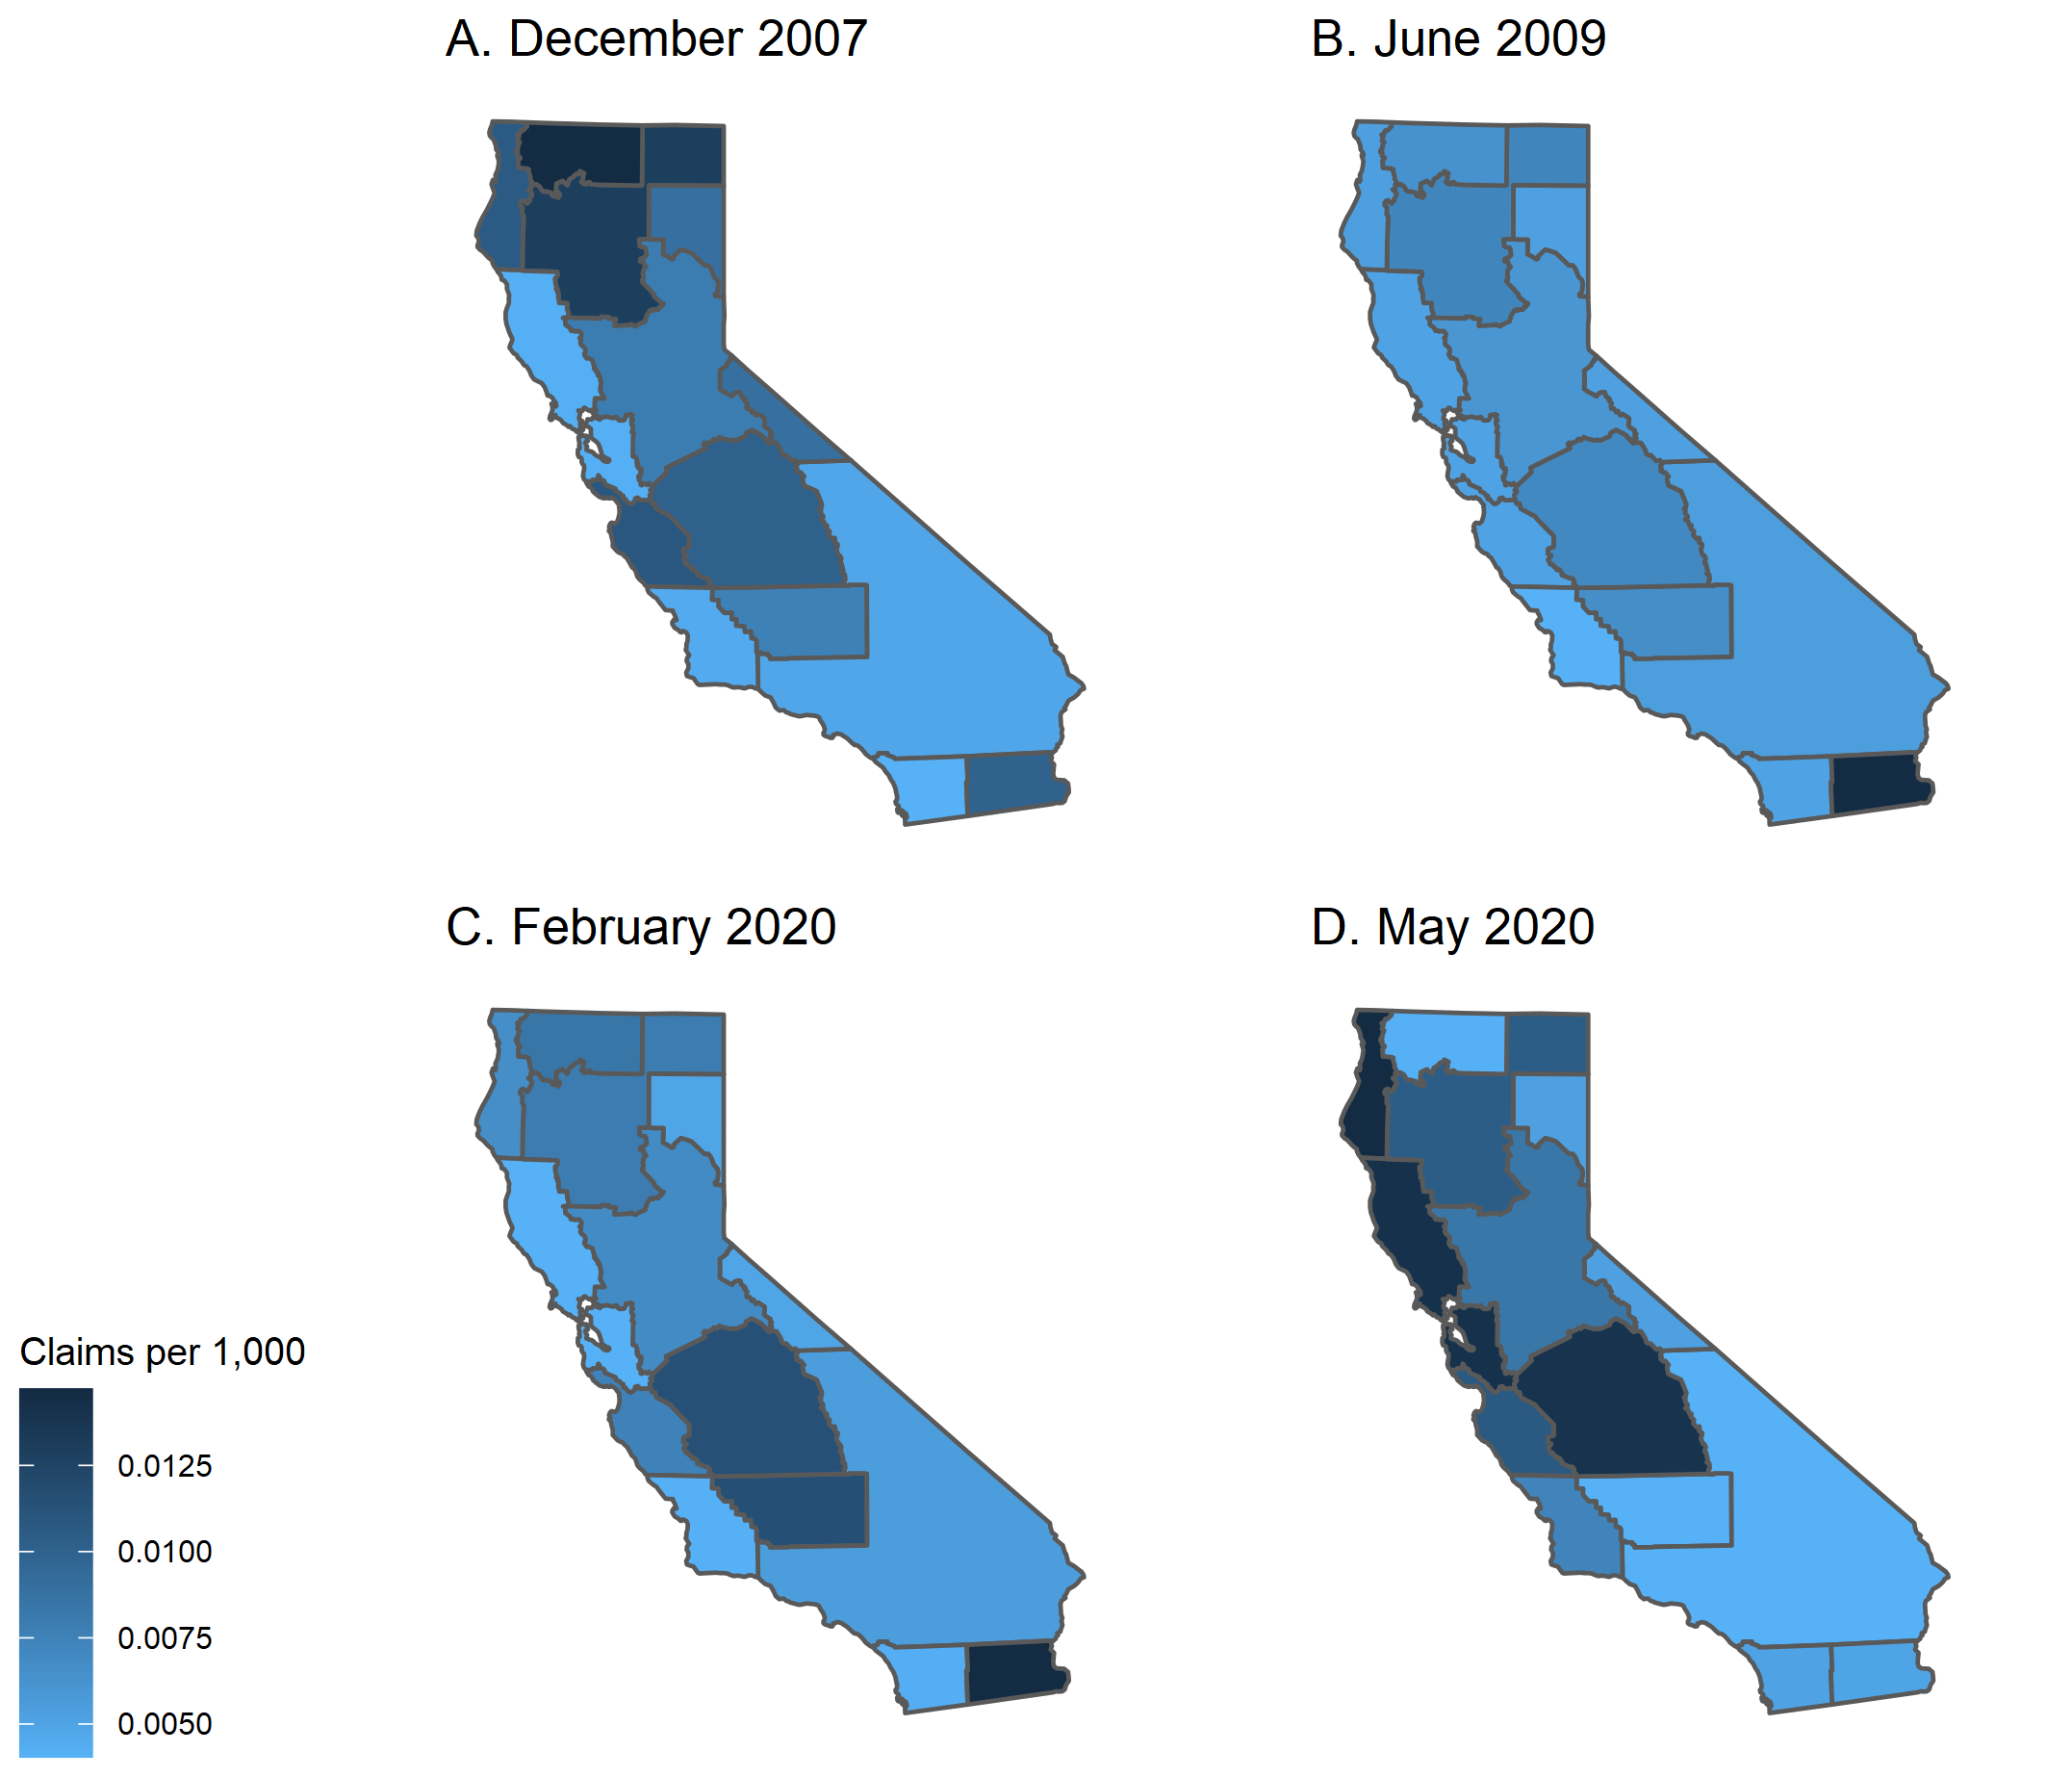 Figure 1 shows heat maps for the level of initial unemployment insurance claims per 1,000 residents for metro areas within California for the months corresponding to the start and end of the 2007–09 recession and the start of the current recession and May 2020. There is a large degree of heterogeneity across metro areas—both across and within the two different recessions.